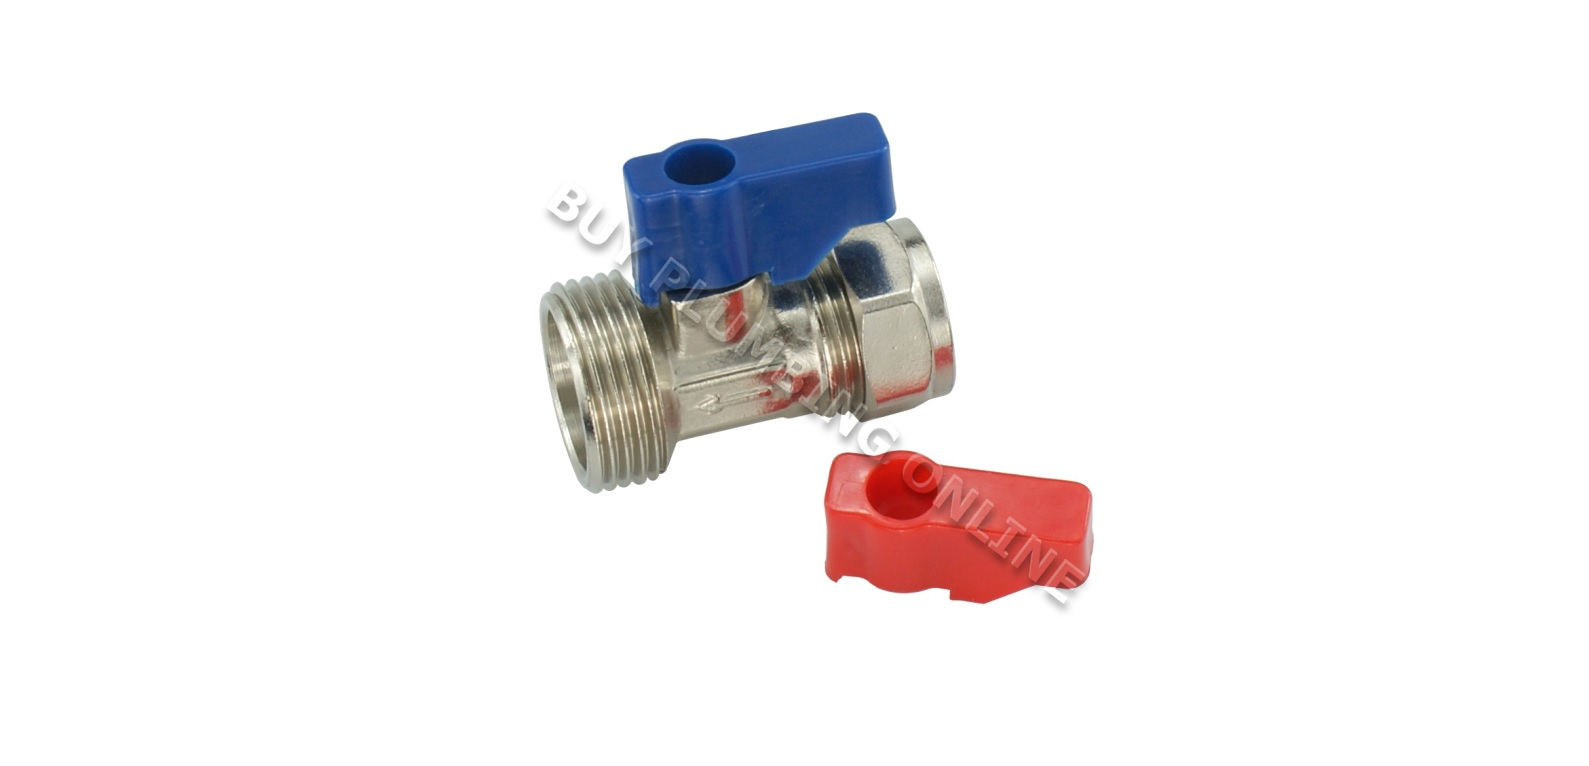 Washing Machine Fittings